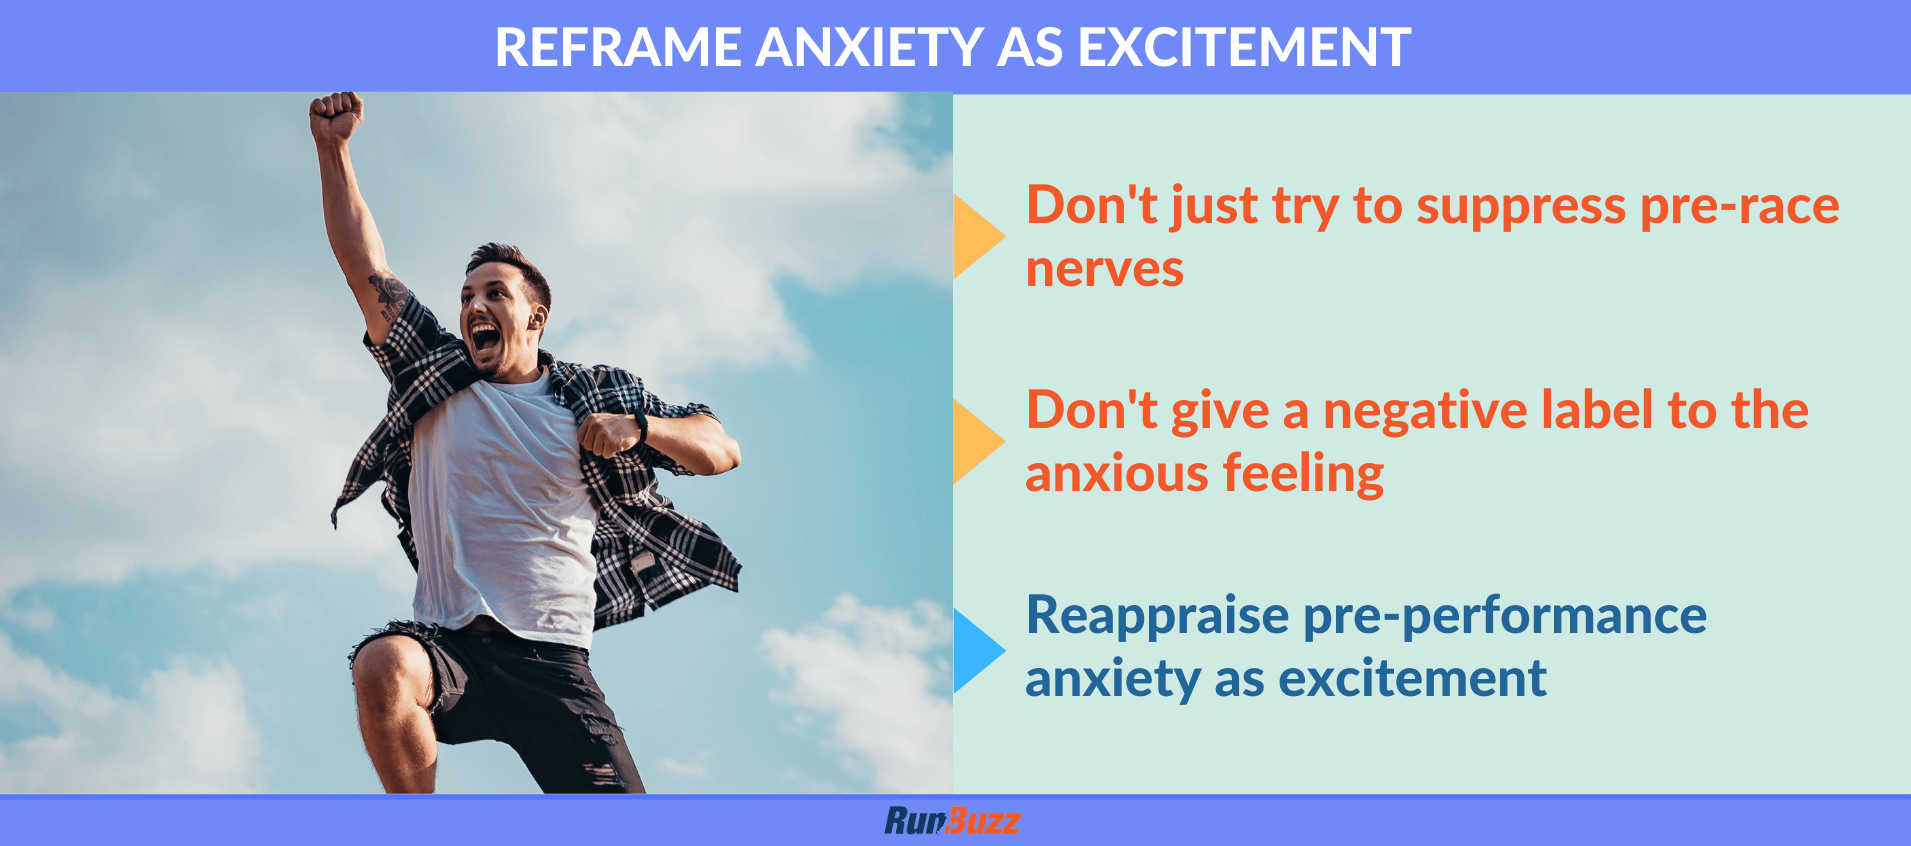 Reframe-anxiety-as-excitement